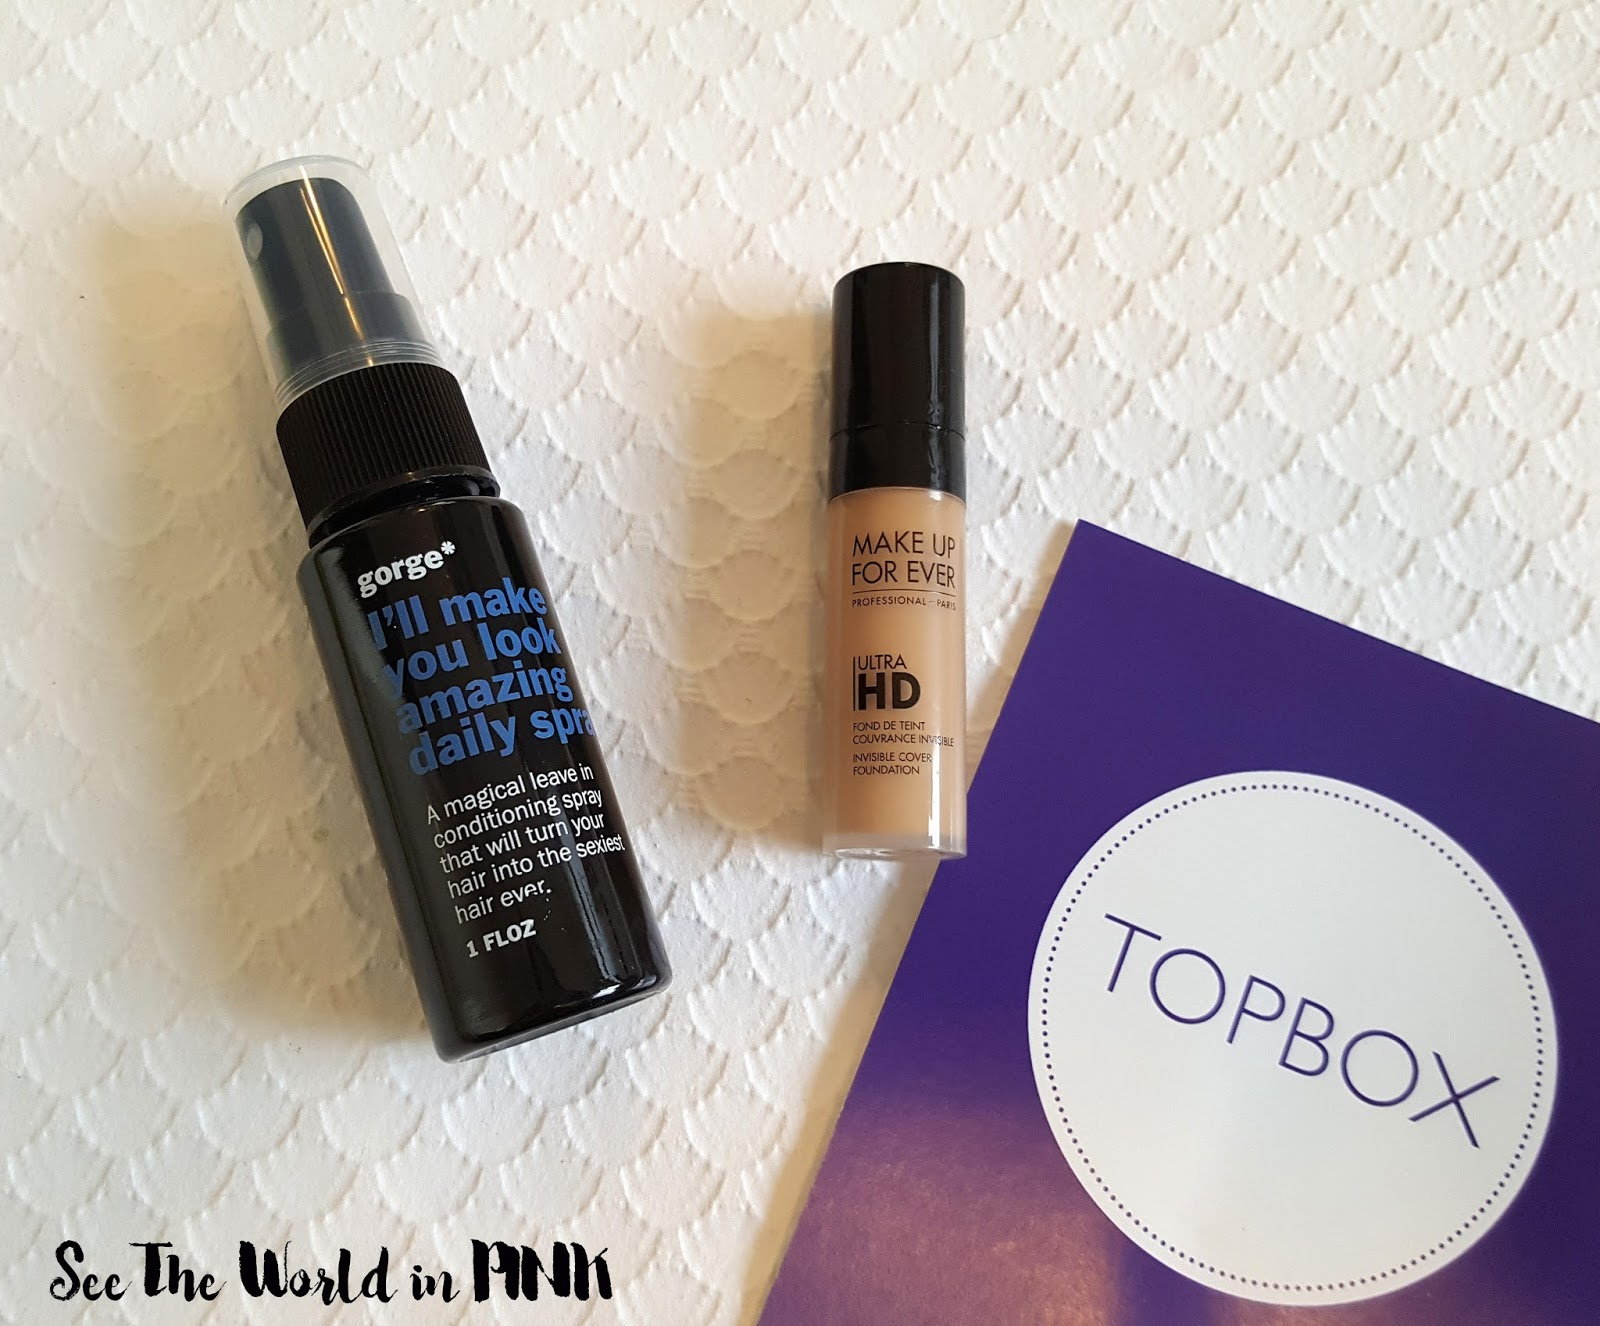 September 2016 Topbox - Review and Unboxing